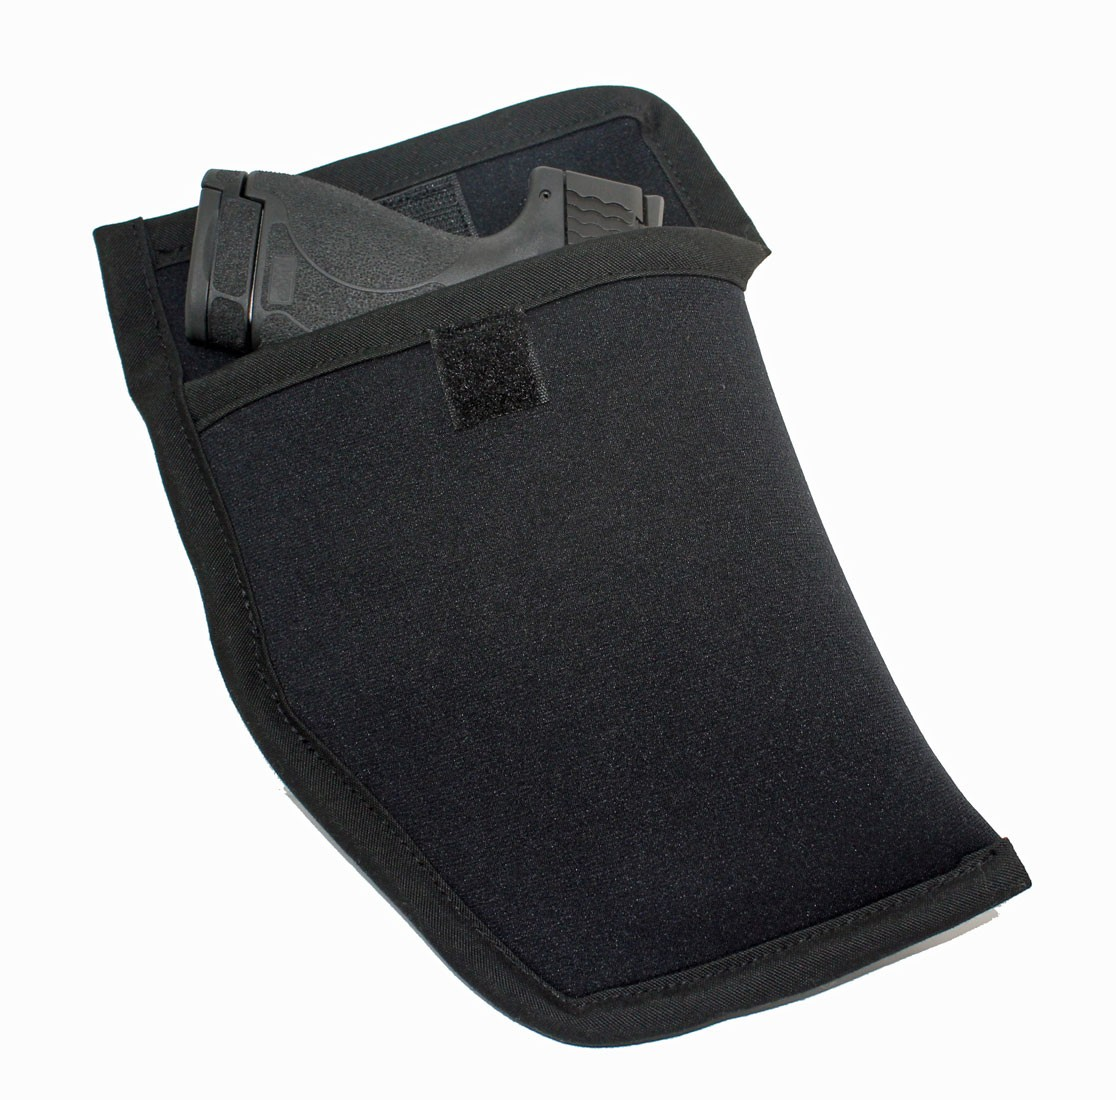 Gun Thinz (Compact) - Soft Neoprene Pistol Case by KSOL Power